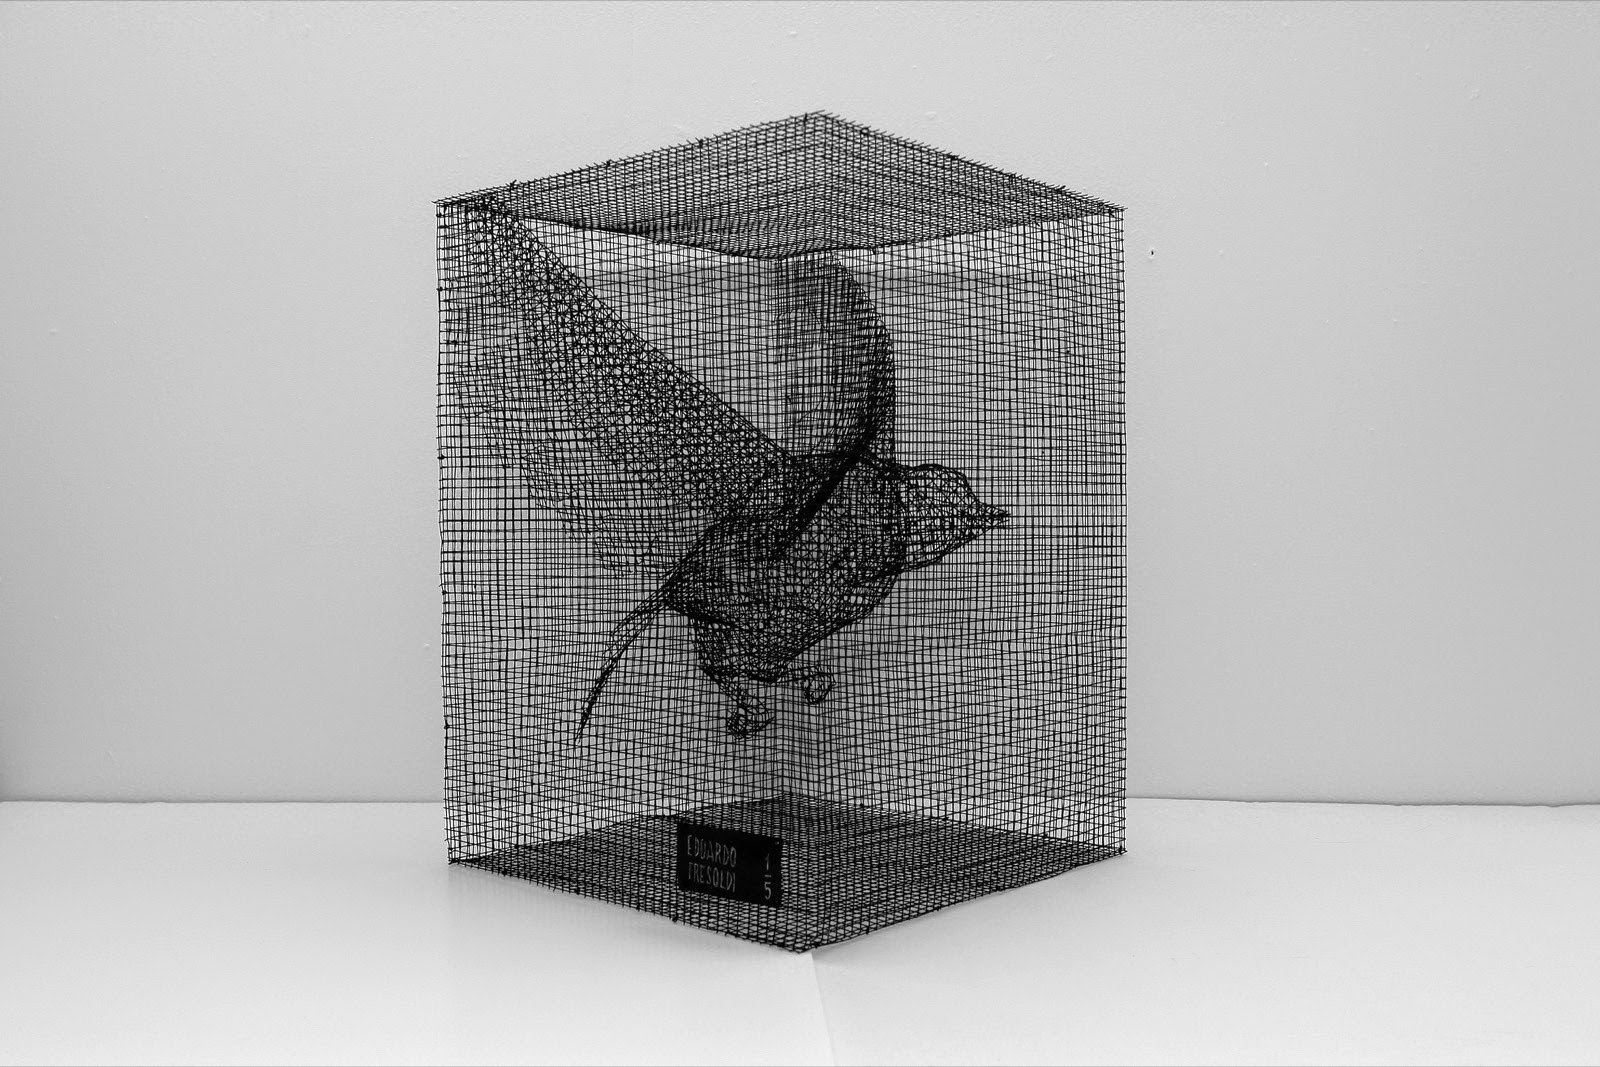 Italian scenographer and sculptor Edoardo Tresoldi, creates amazing hand-made sculpture from metallic wire mesh, transforming a mundane industrial material into delicately crafted three-dimensional figures. Edoardo turns this transparent material into pieces that offer a moment of memory and grasp the relationship of the body in space.